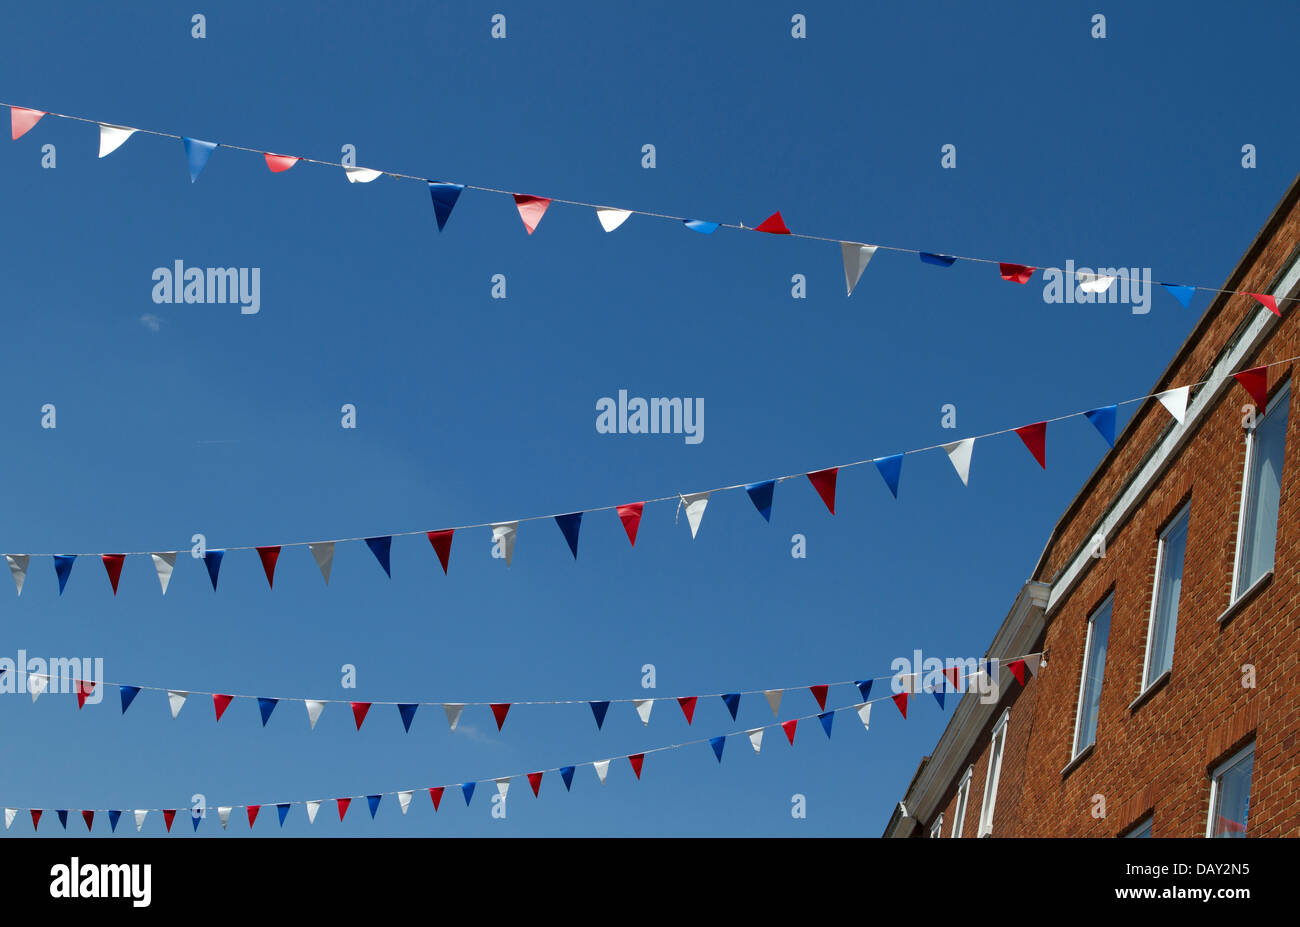 Bunting against a blue sky. - Stock Image